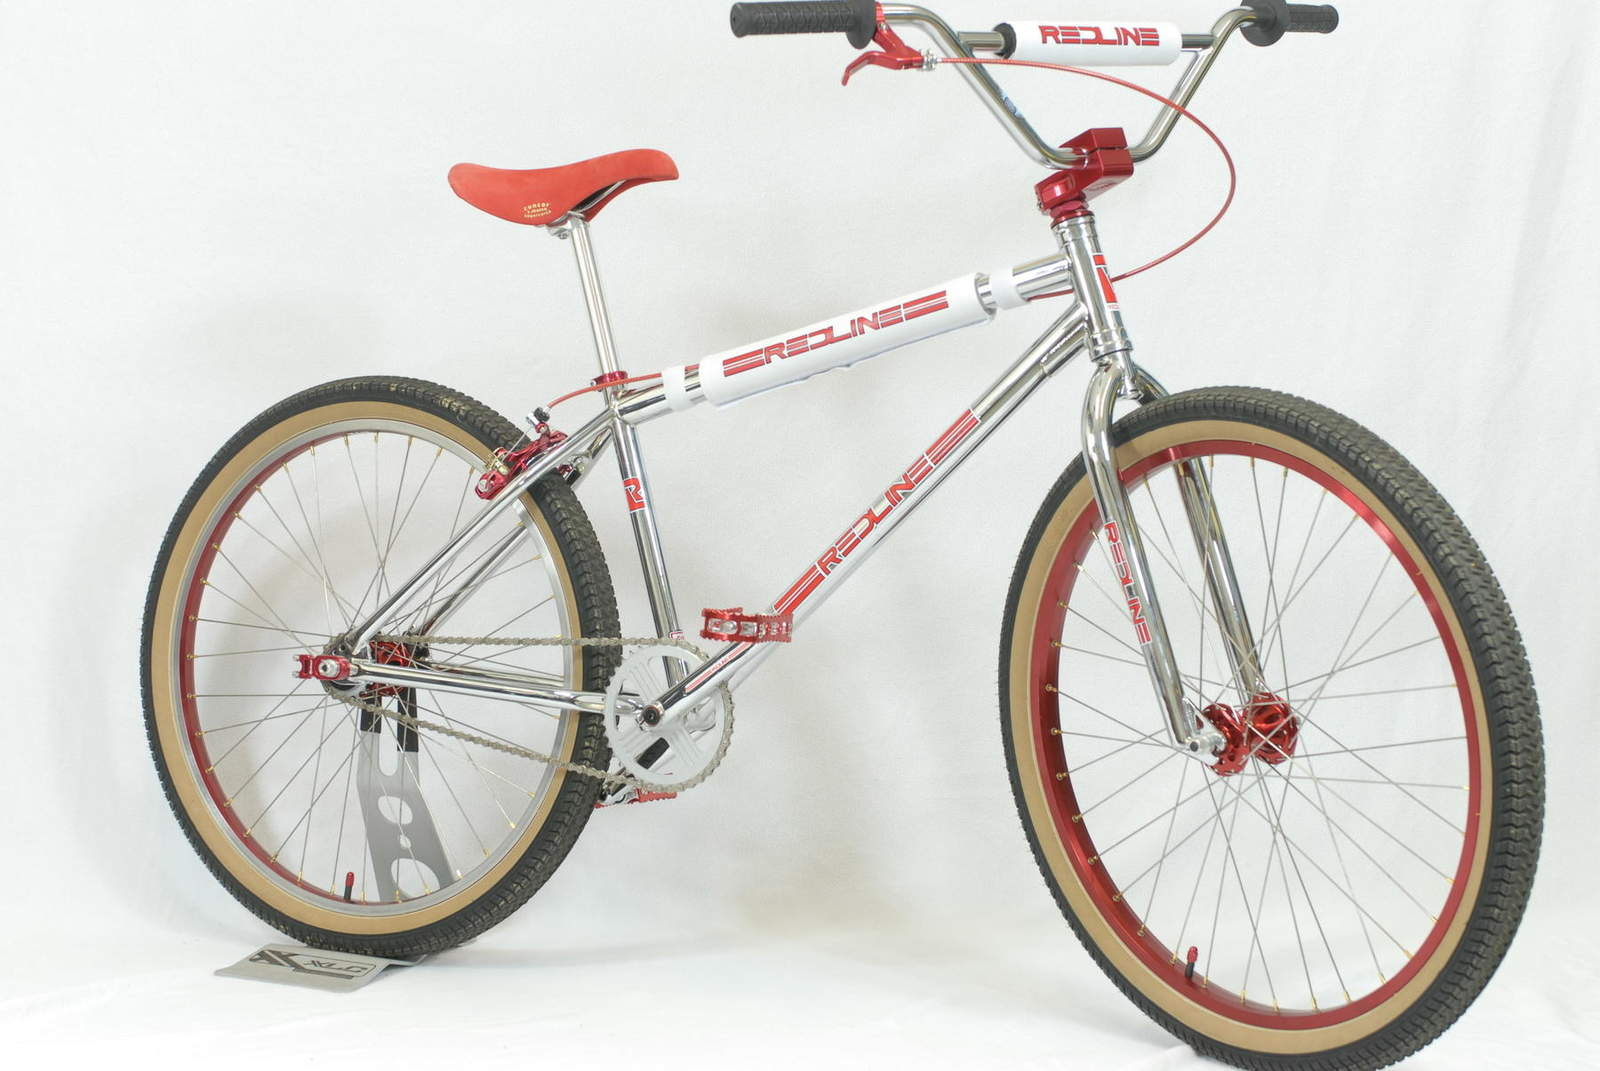 http://uploads.bmxmuseum.com/user-images/88664/dsc_09085d219e2e18d1e_blowup5d22ccf39a.jpg